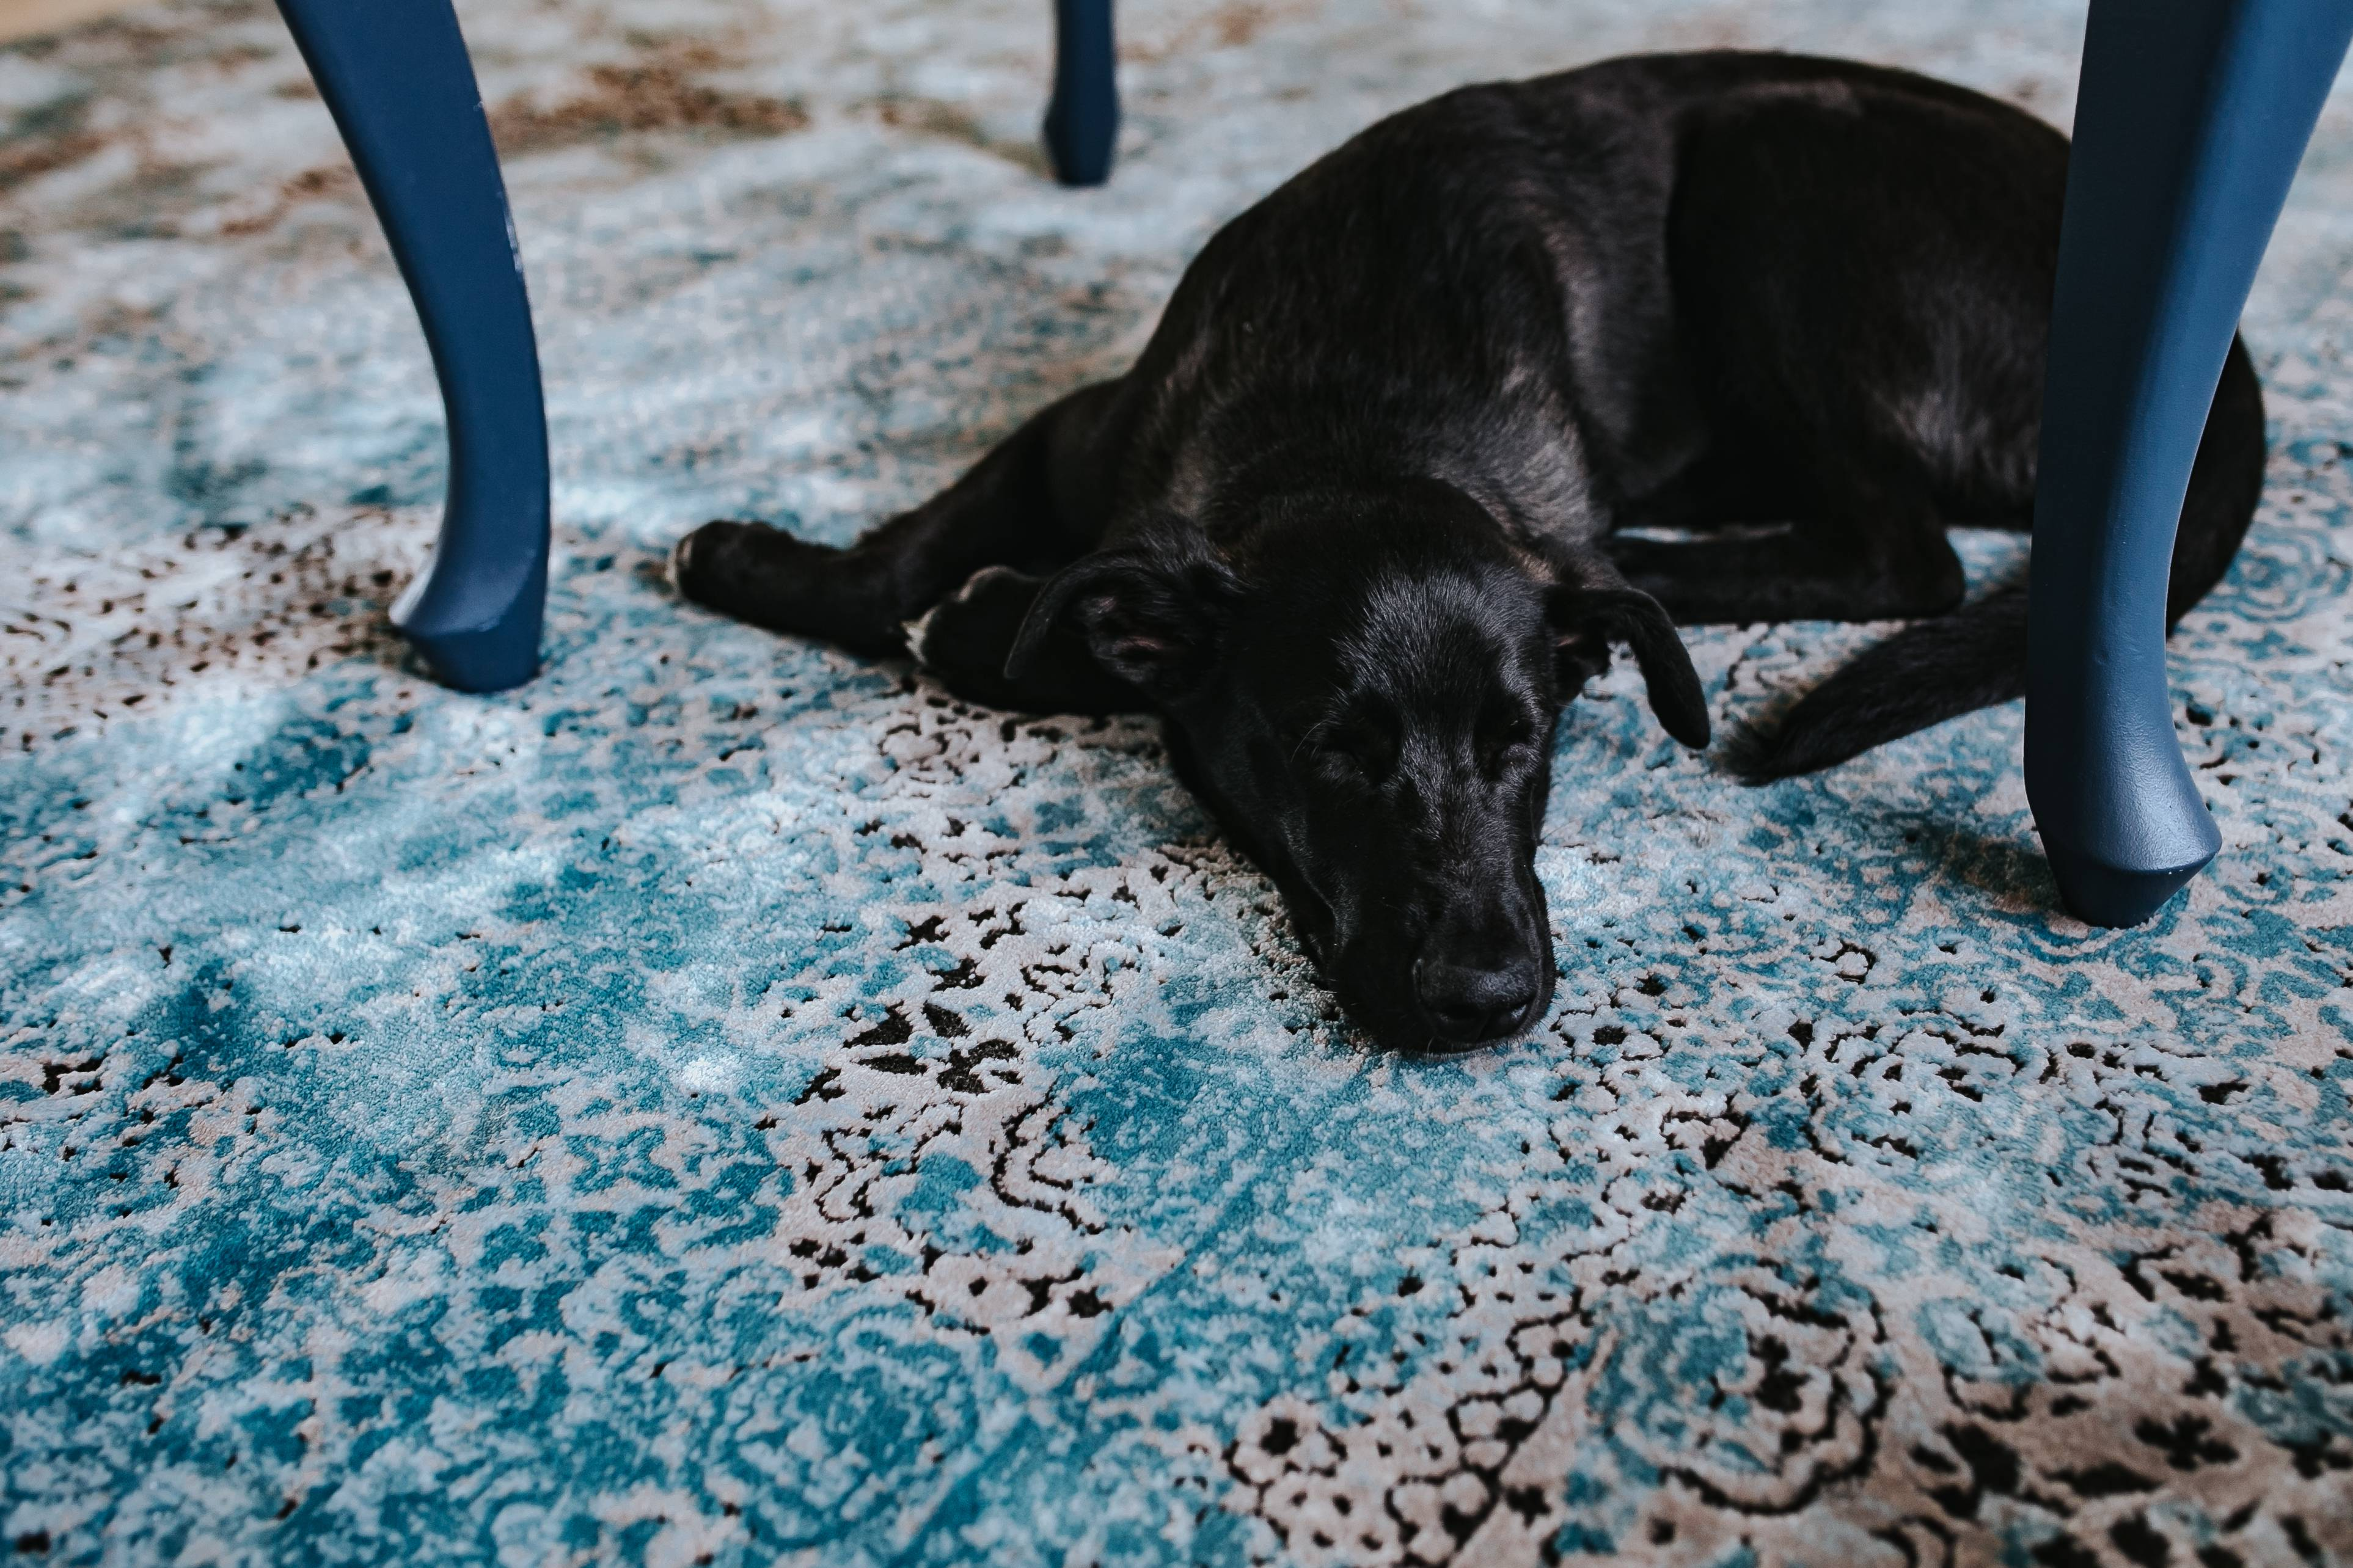 kaboompics_Black dog on a light blue carpet.jpg